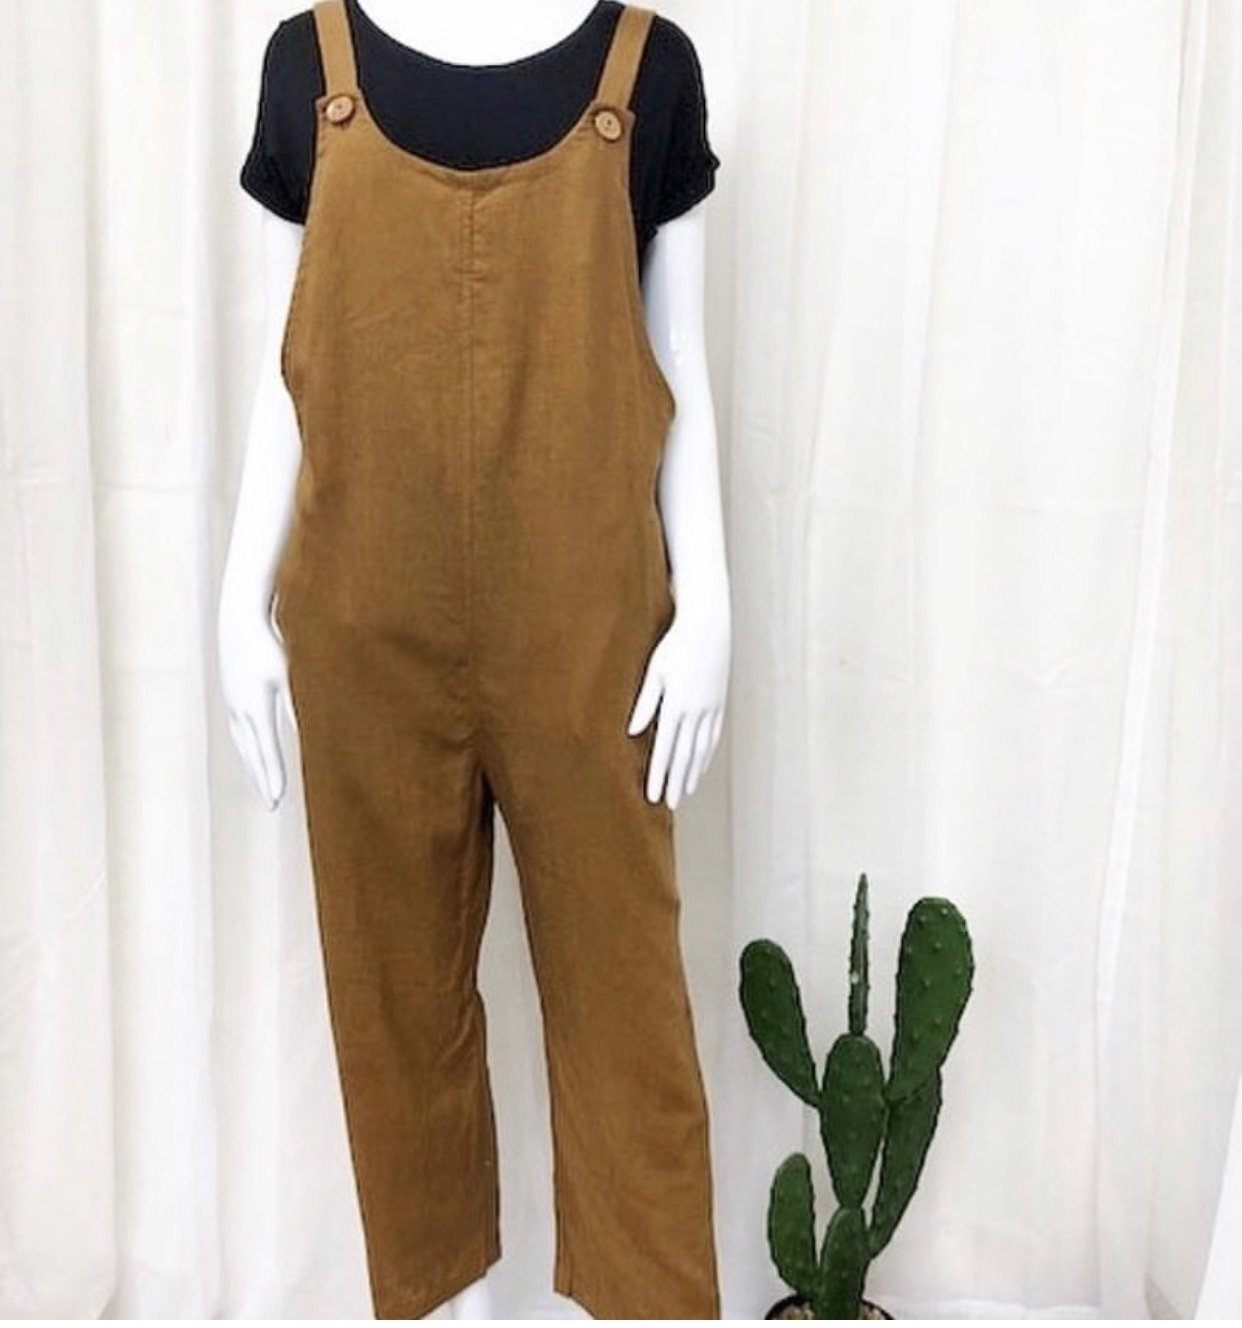 Willow Overalls - Tobacco Indigo Attic